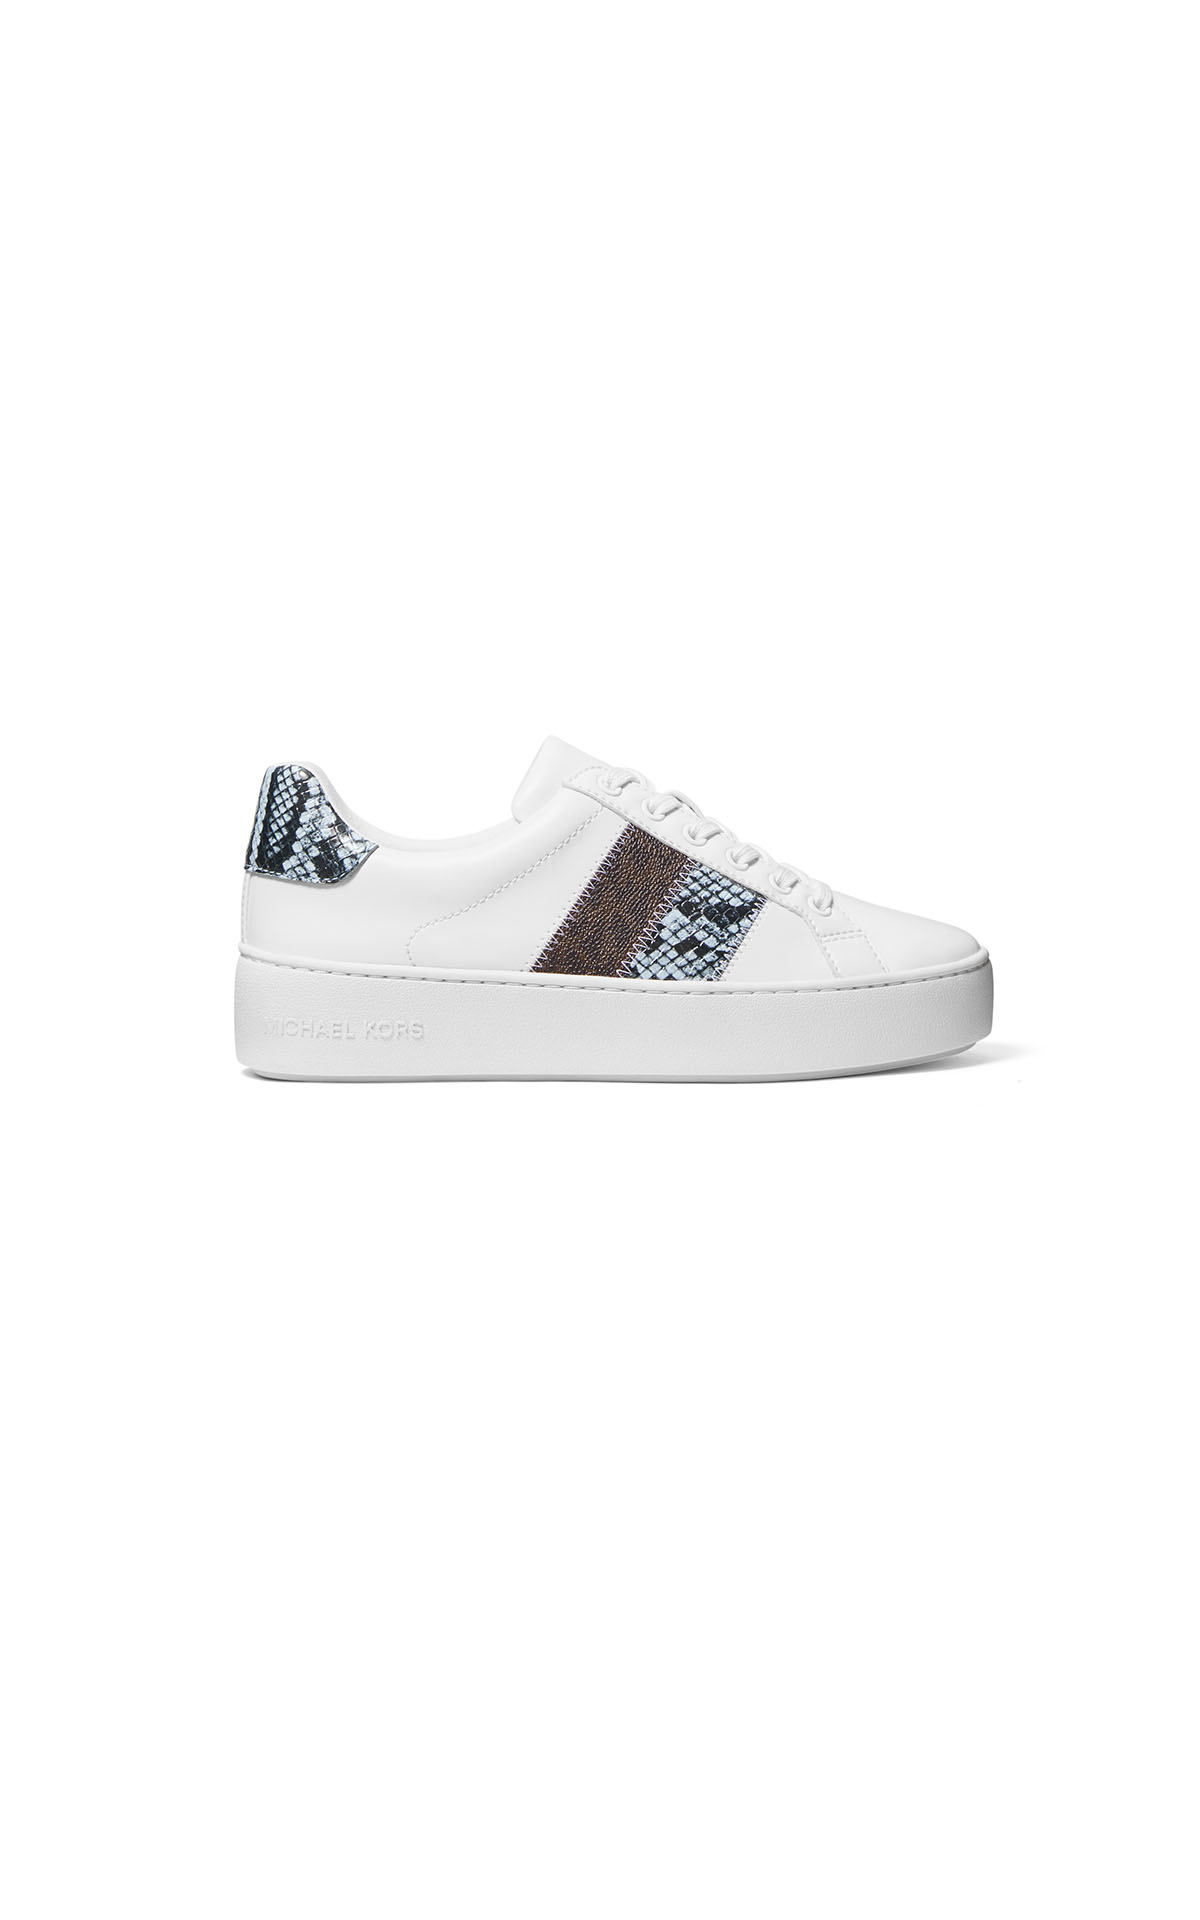 Michael Kors Catelyn sneaker at The Bicester Village Shopping Collection